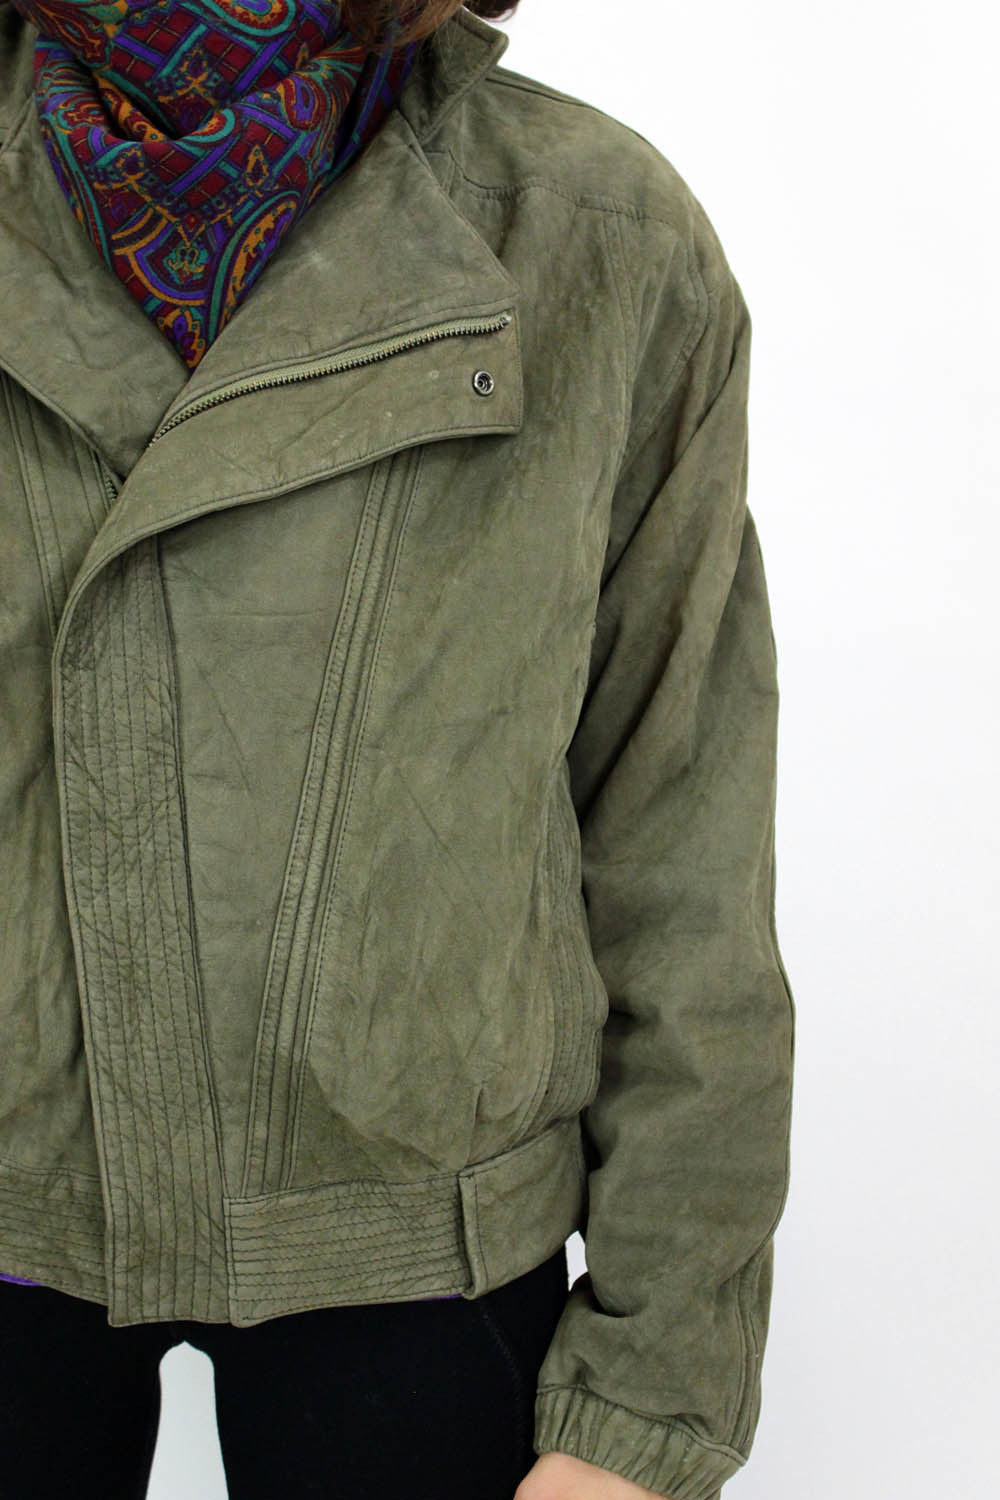 green aviator jacket